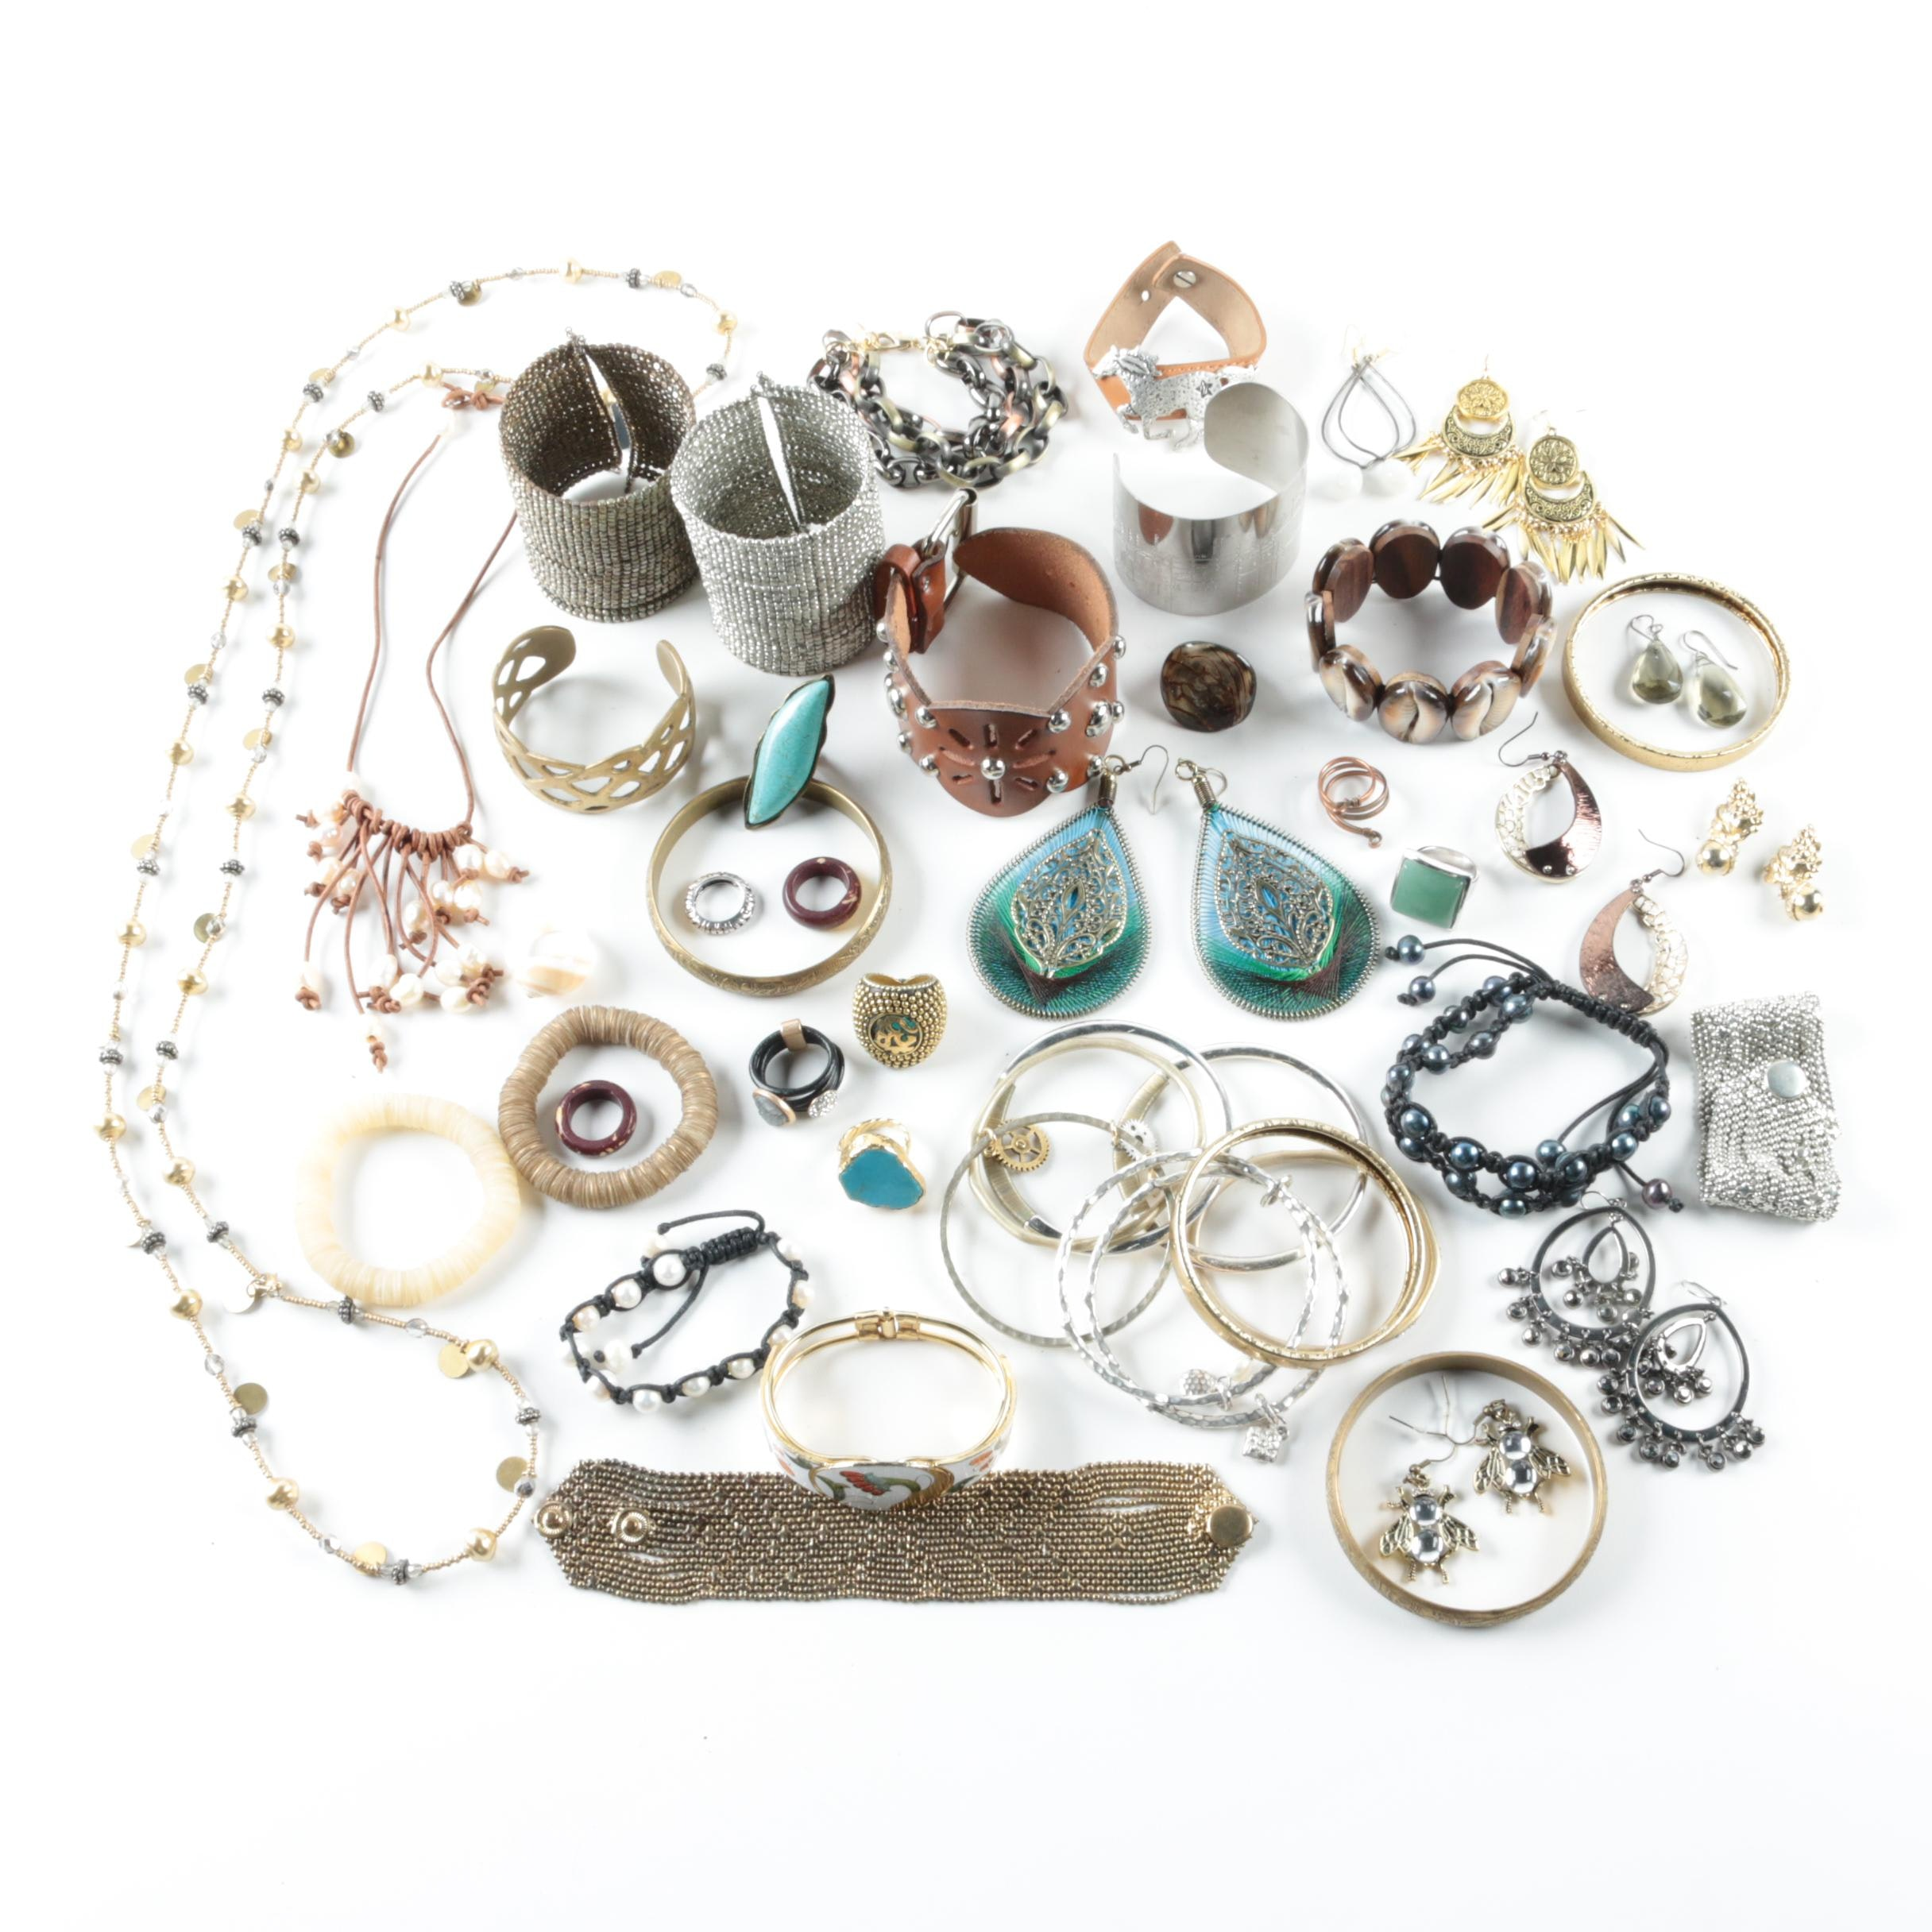 Silver and Gold Tone Gemstone Jewelry Assortment